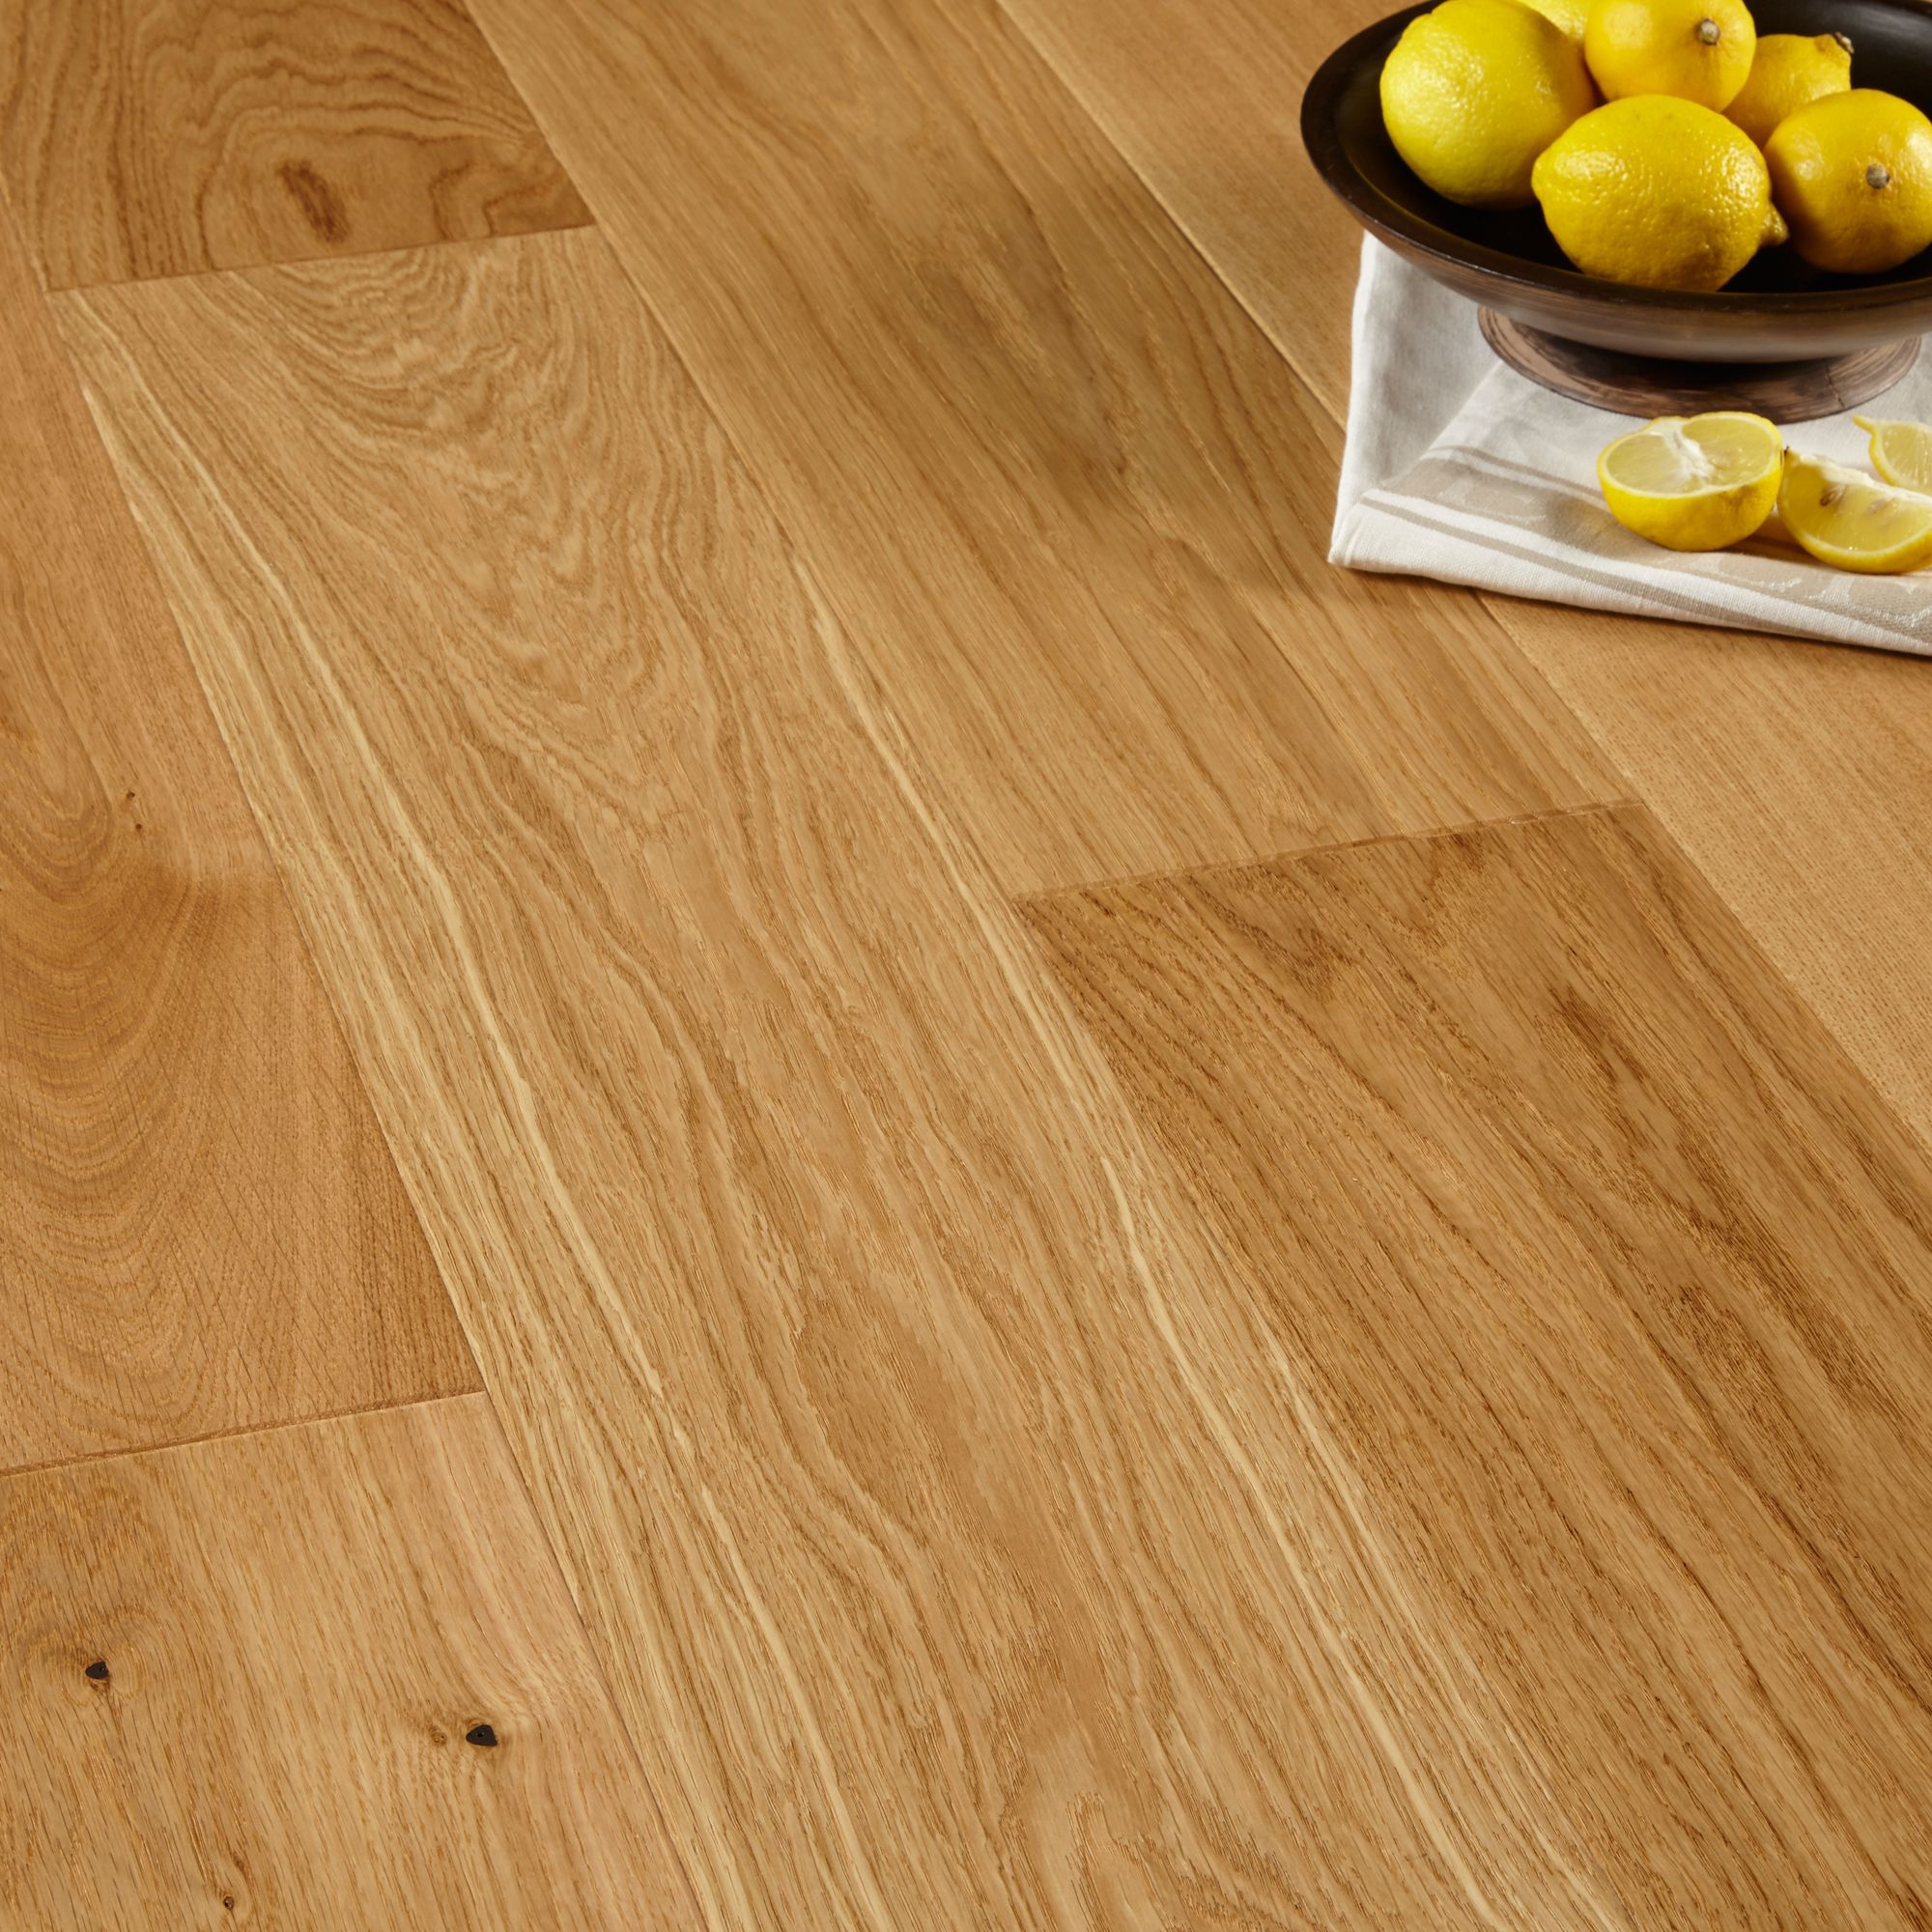 Colours Sotto Oak Effect Wood Top Layer Flooring 1 37m² Pack Departments Diy At B Q